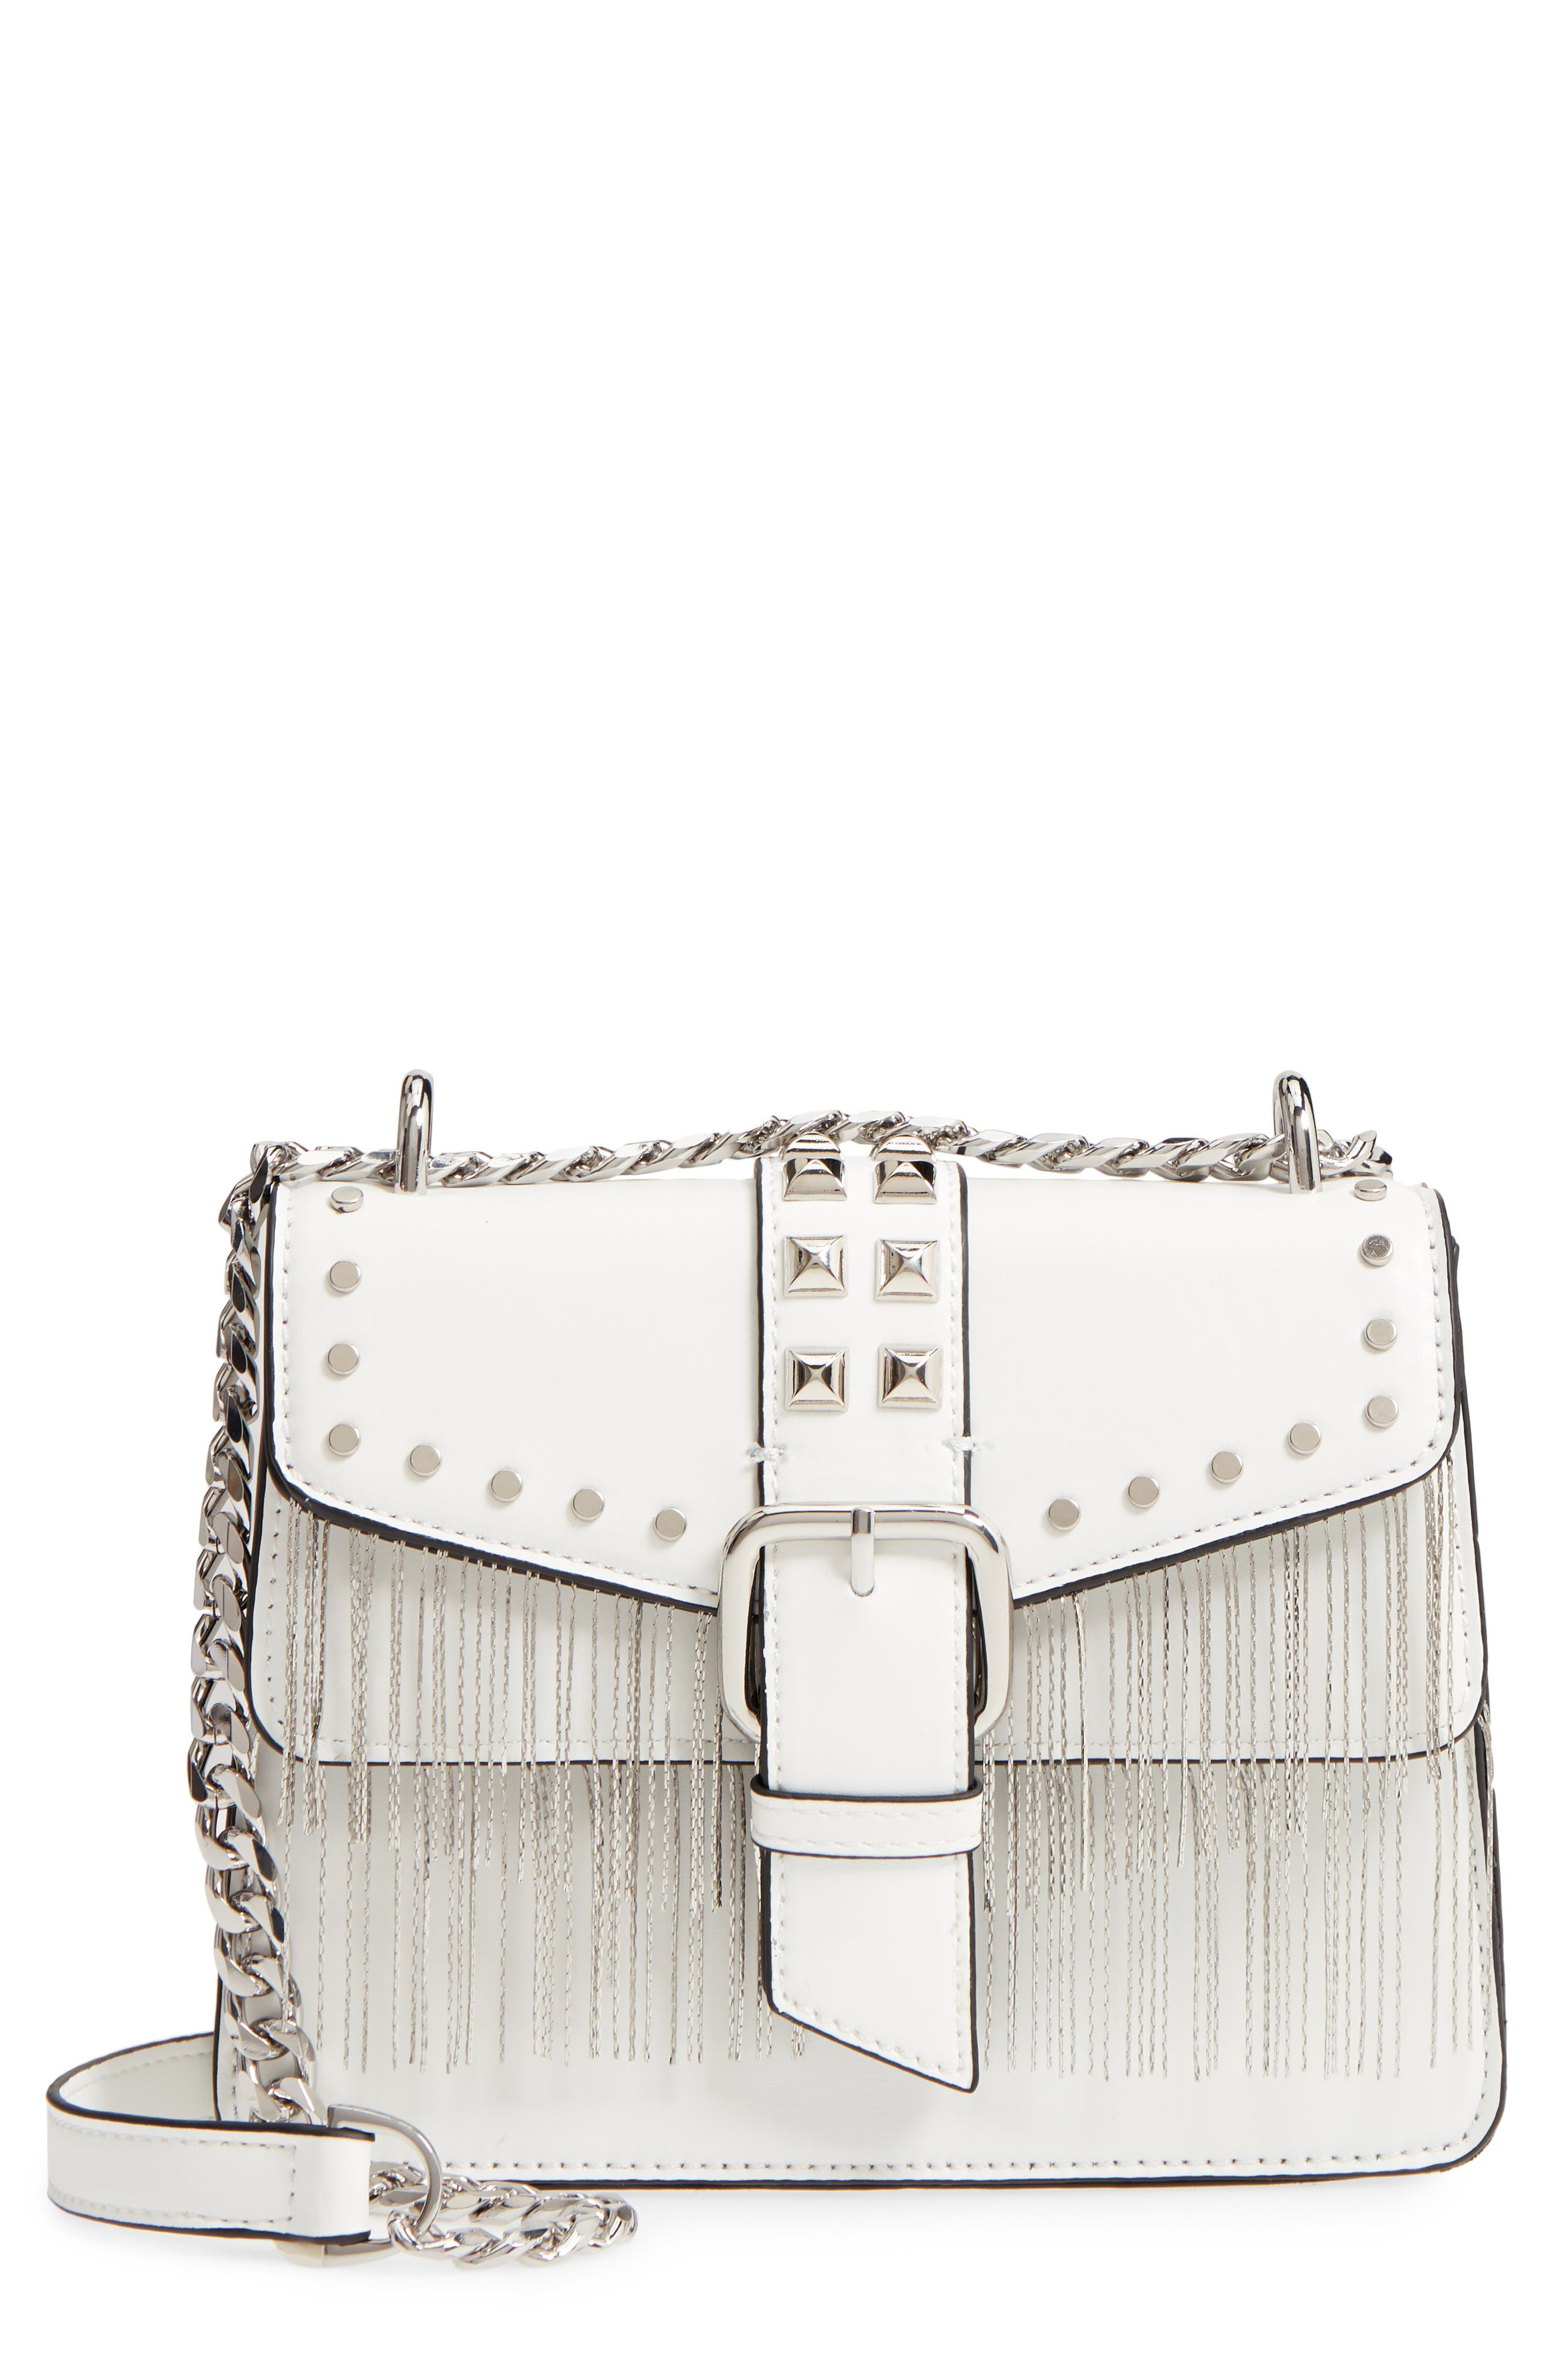 Shelby Studded Faux Leather Crossbody Bag,                             Main thumbnail 1, color,                             White